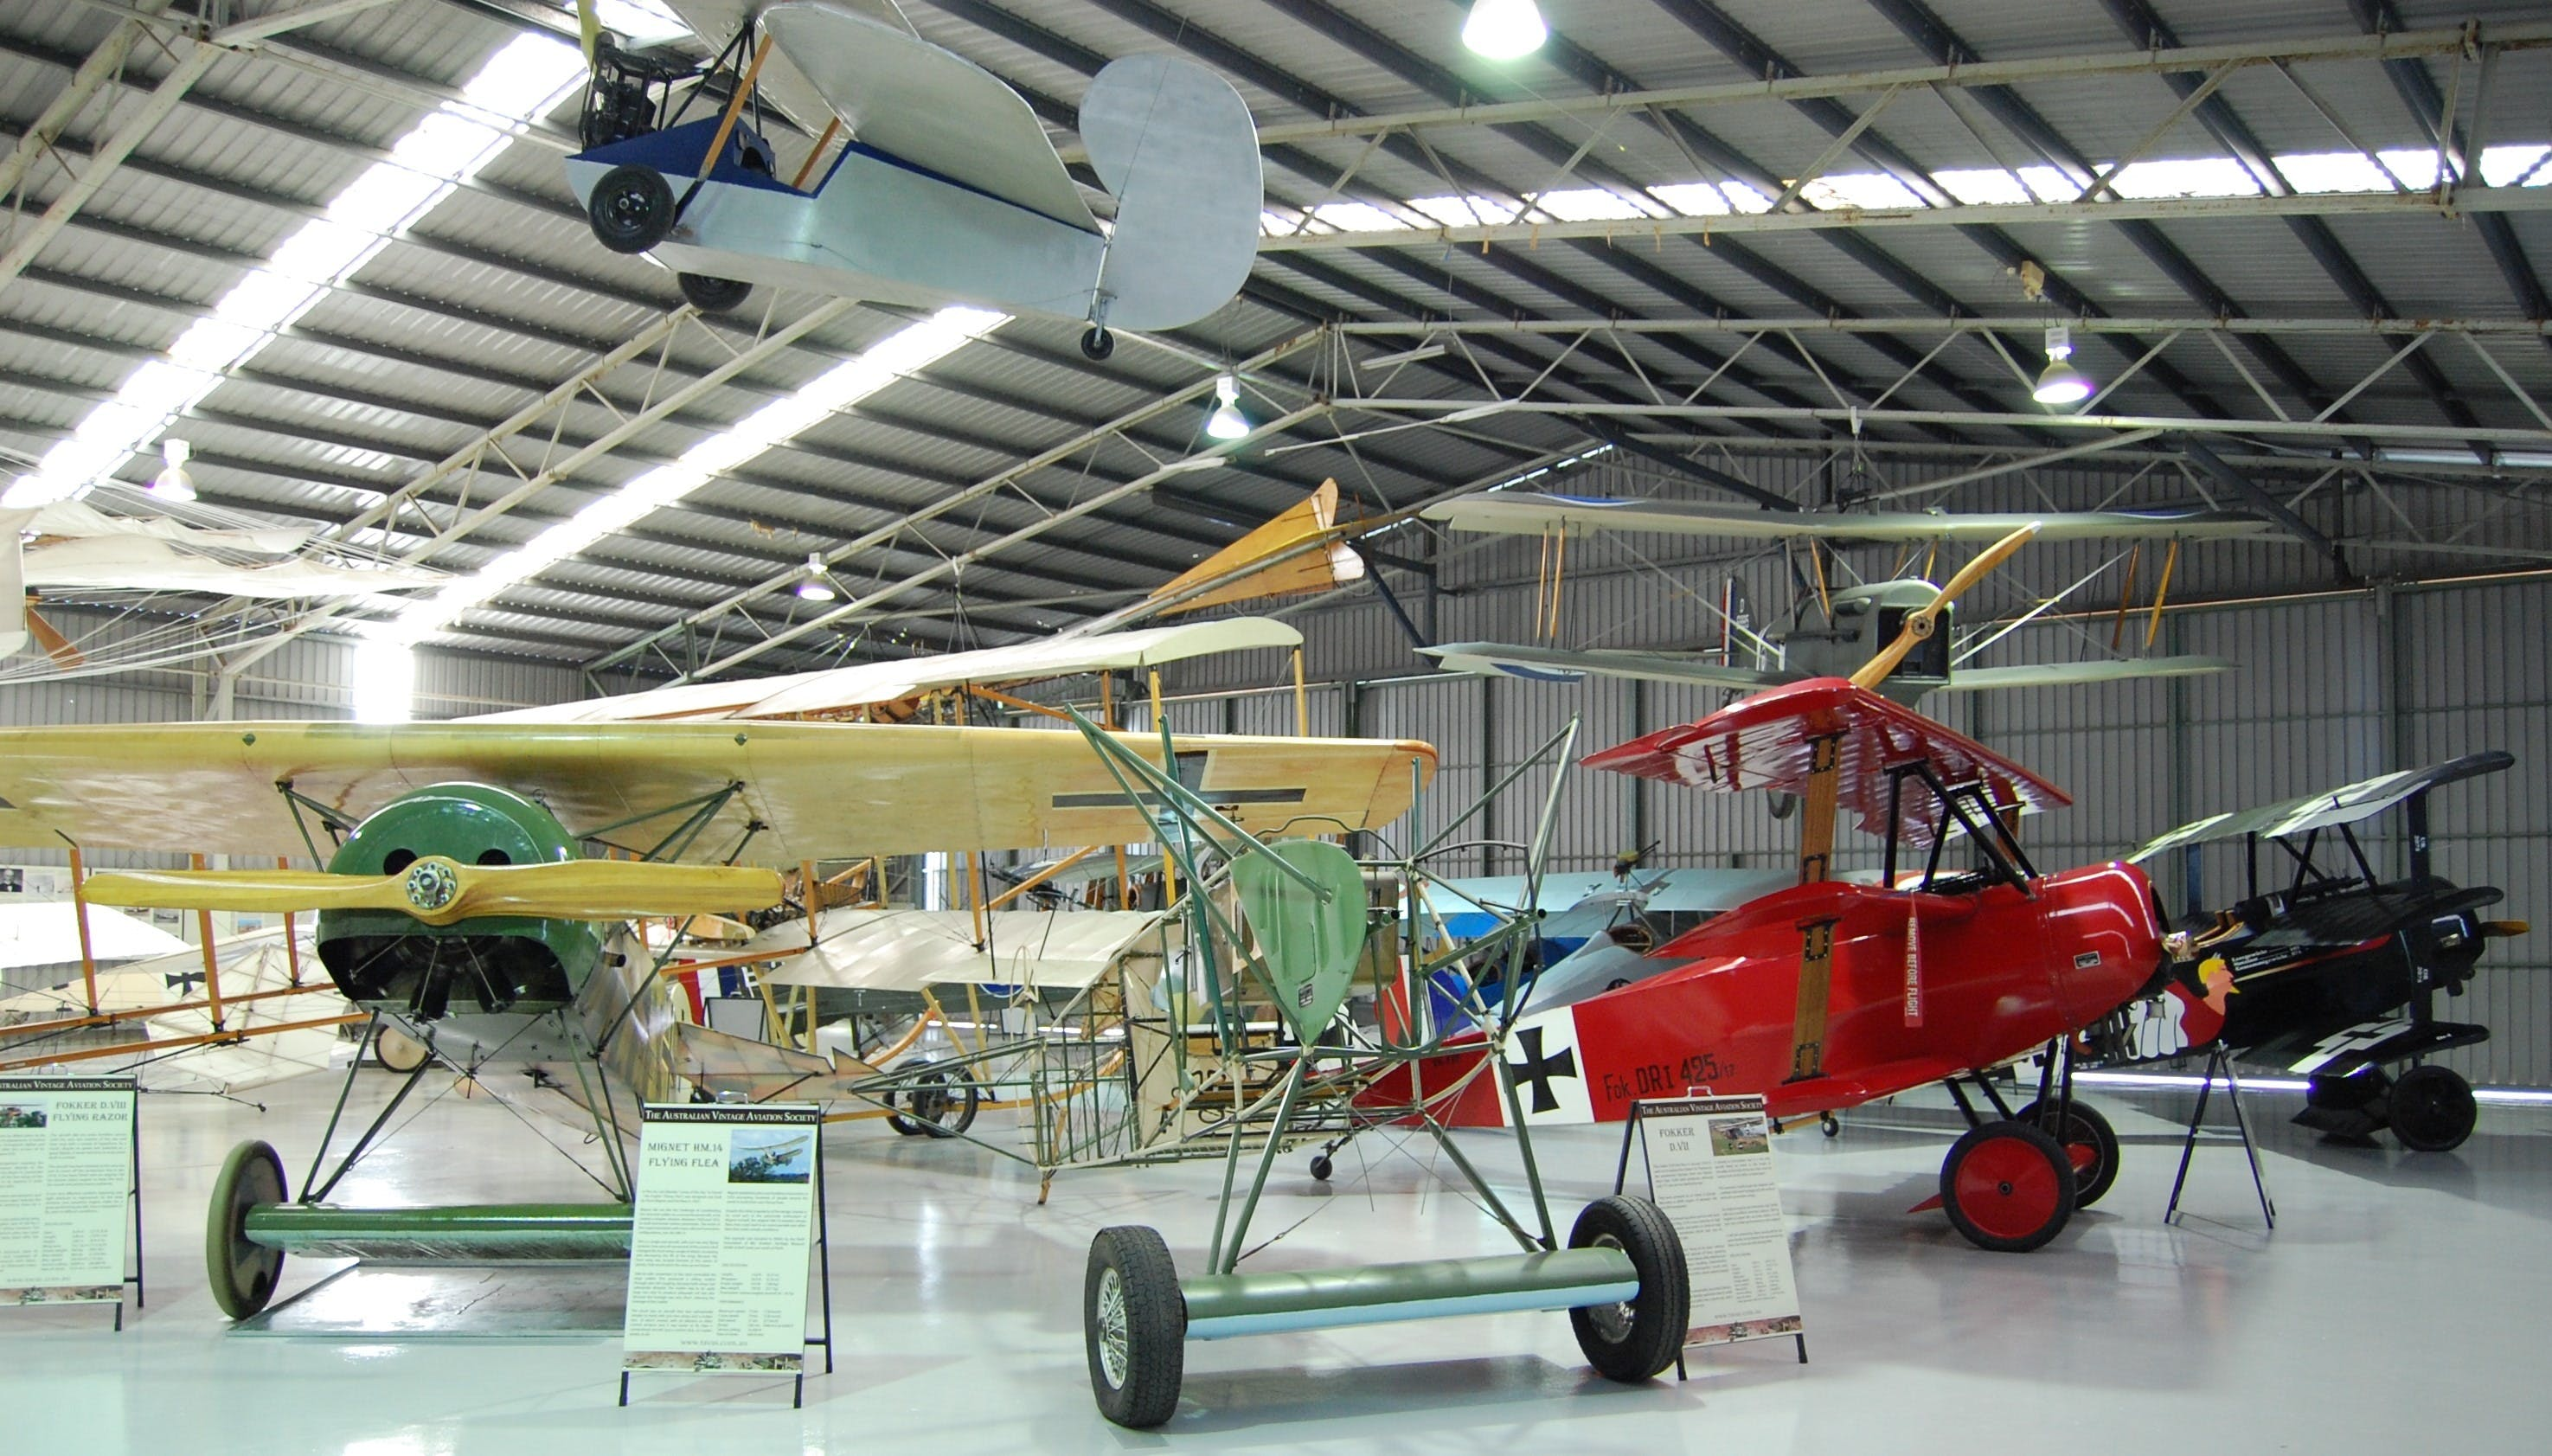 The Australian Vintage Aviation Society Museum - Accommodation Search